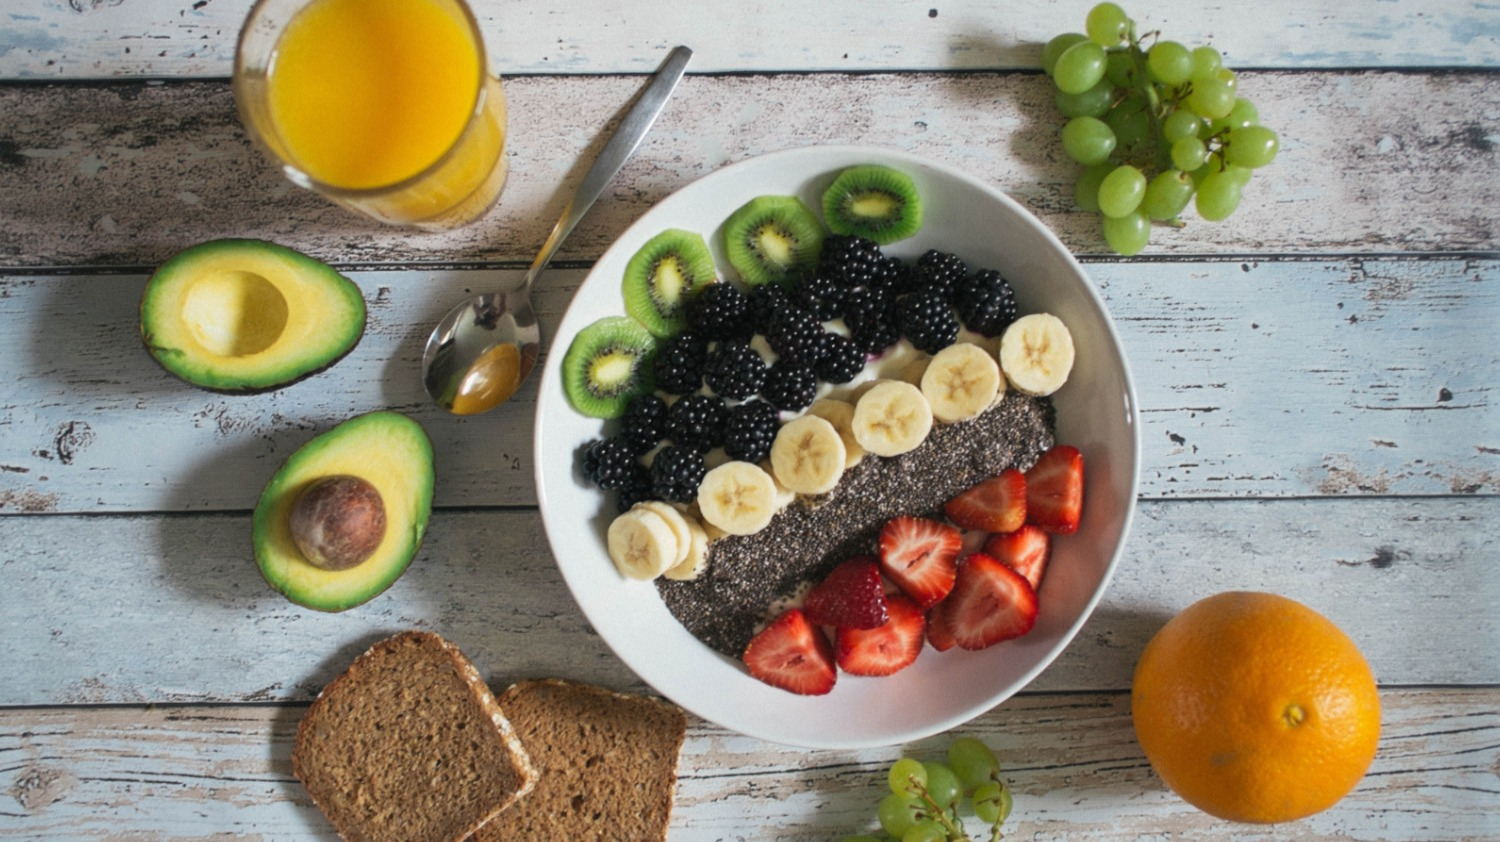 Breakfast is the Simplest Meal to Veganize